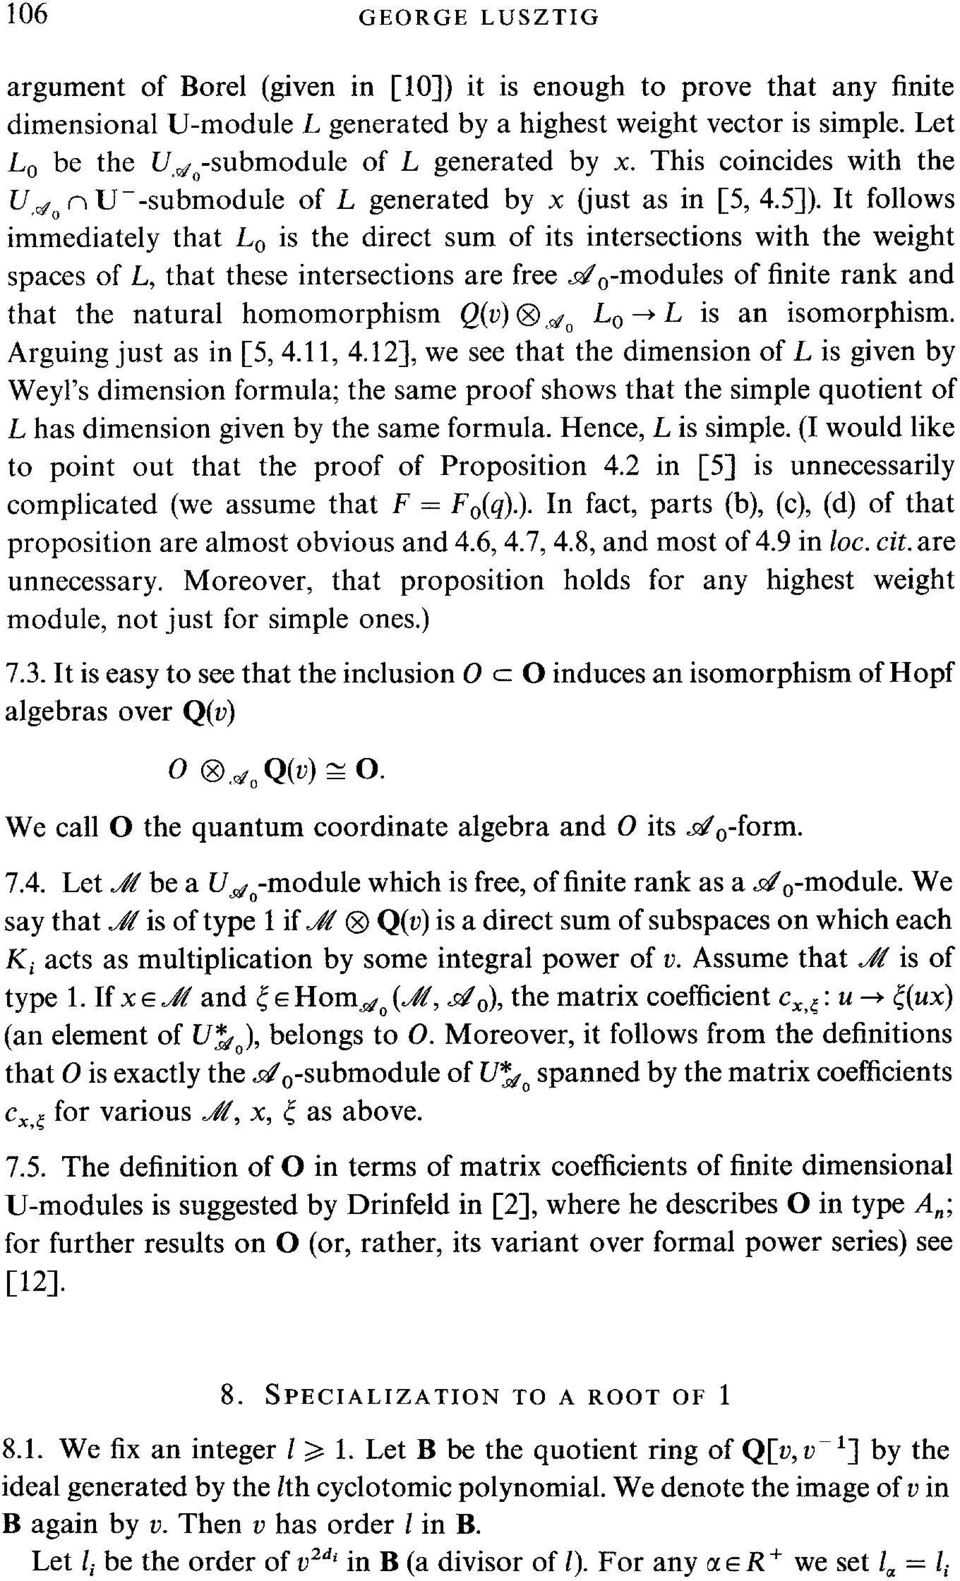 It follows immediately that L o is the direct sum of its intersections with the weight spaces of L, that these intersections are free do-modules of finite rank and that the natural homomorphism Q(v),